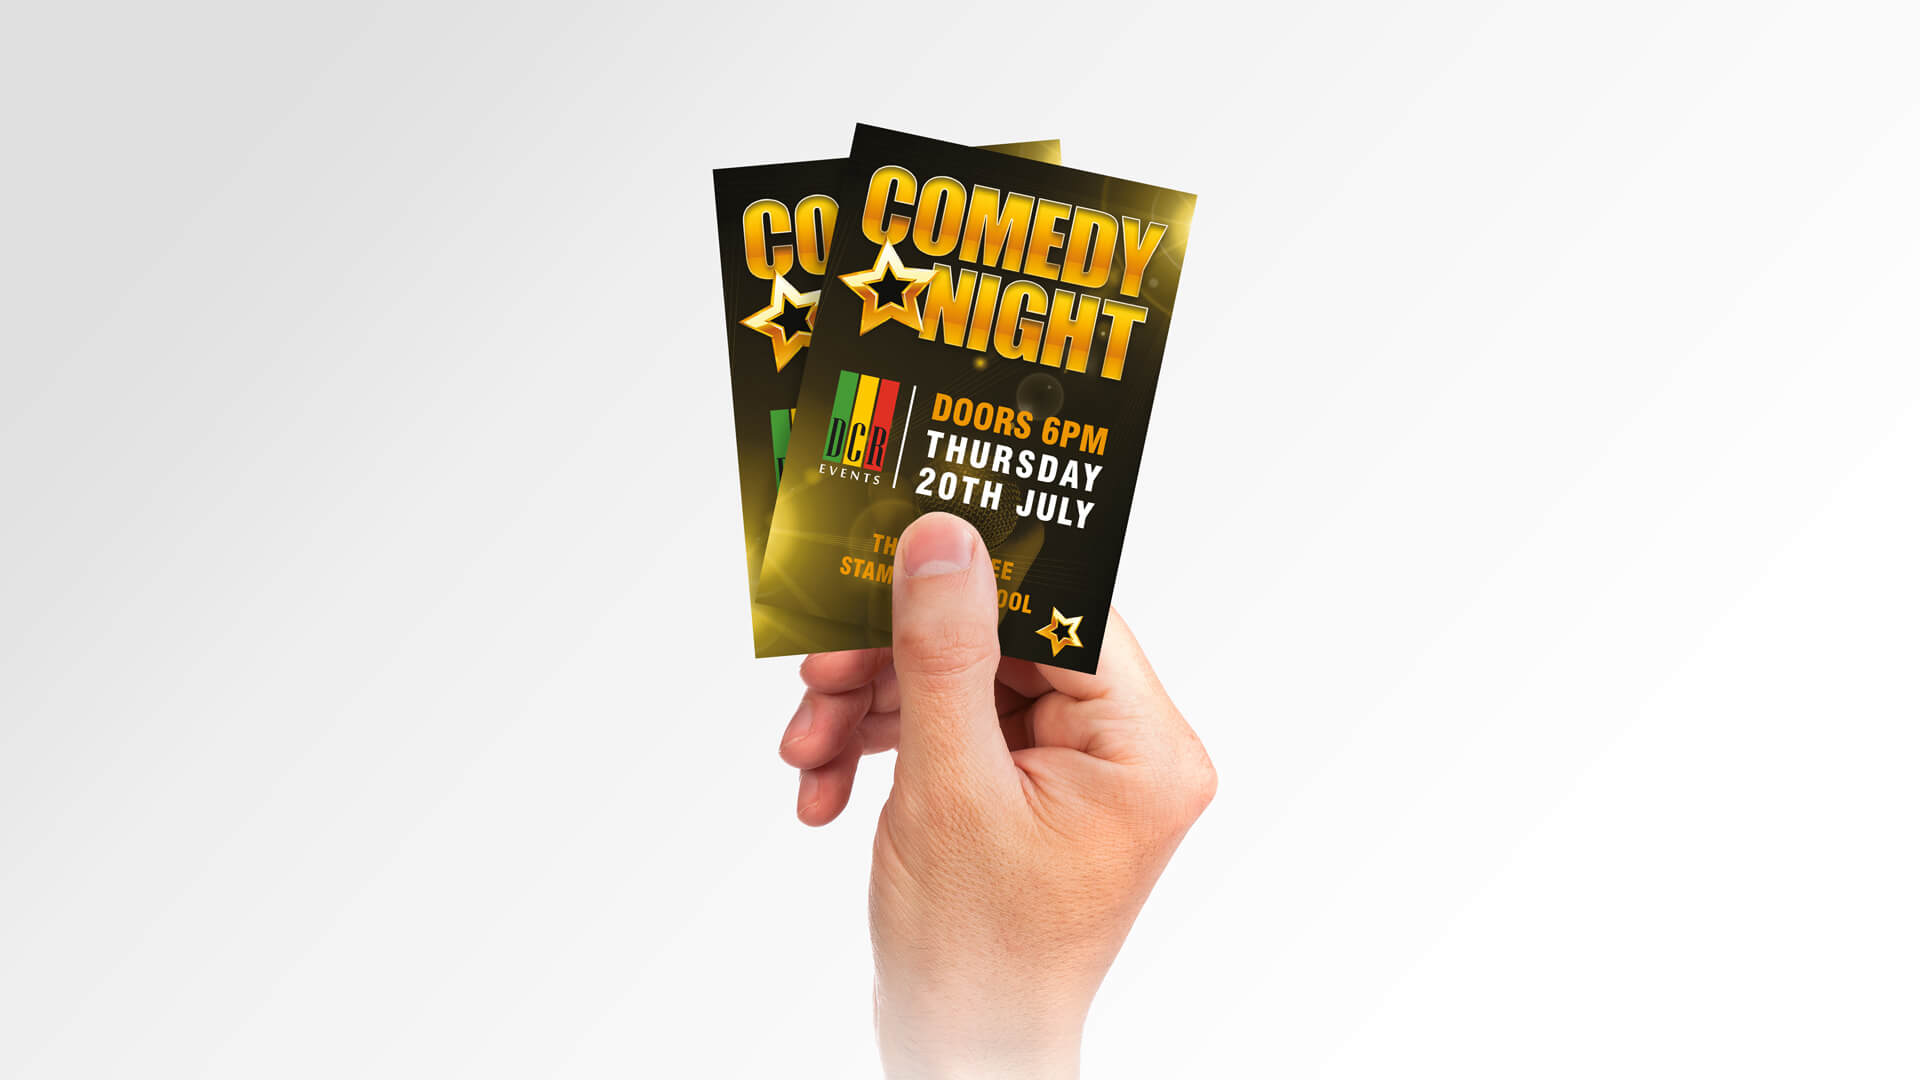 Comedy Night Marketing Materials